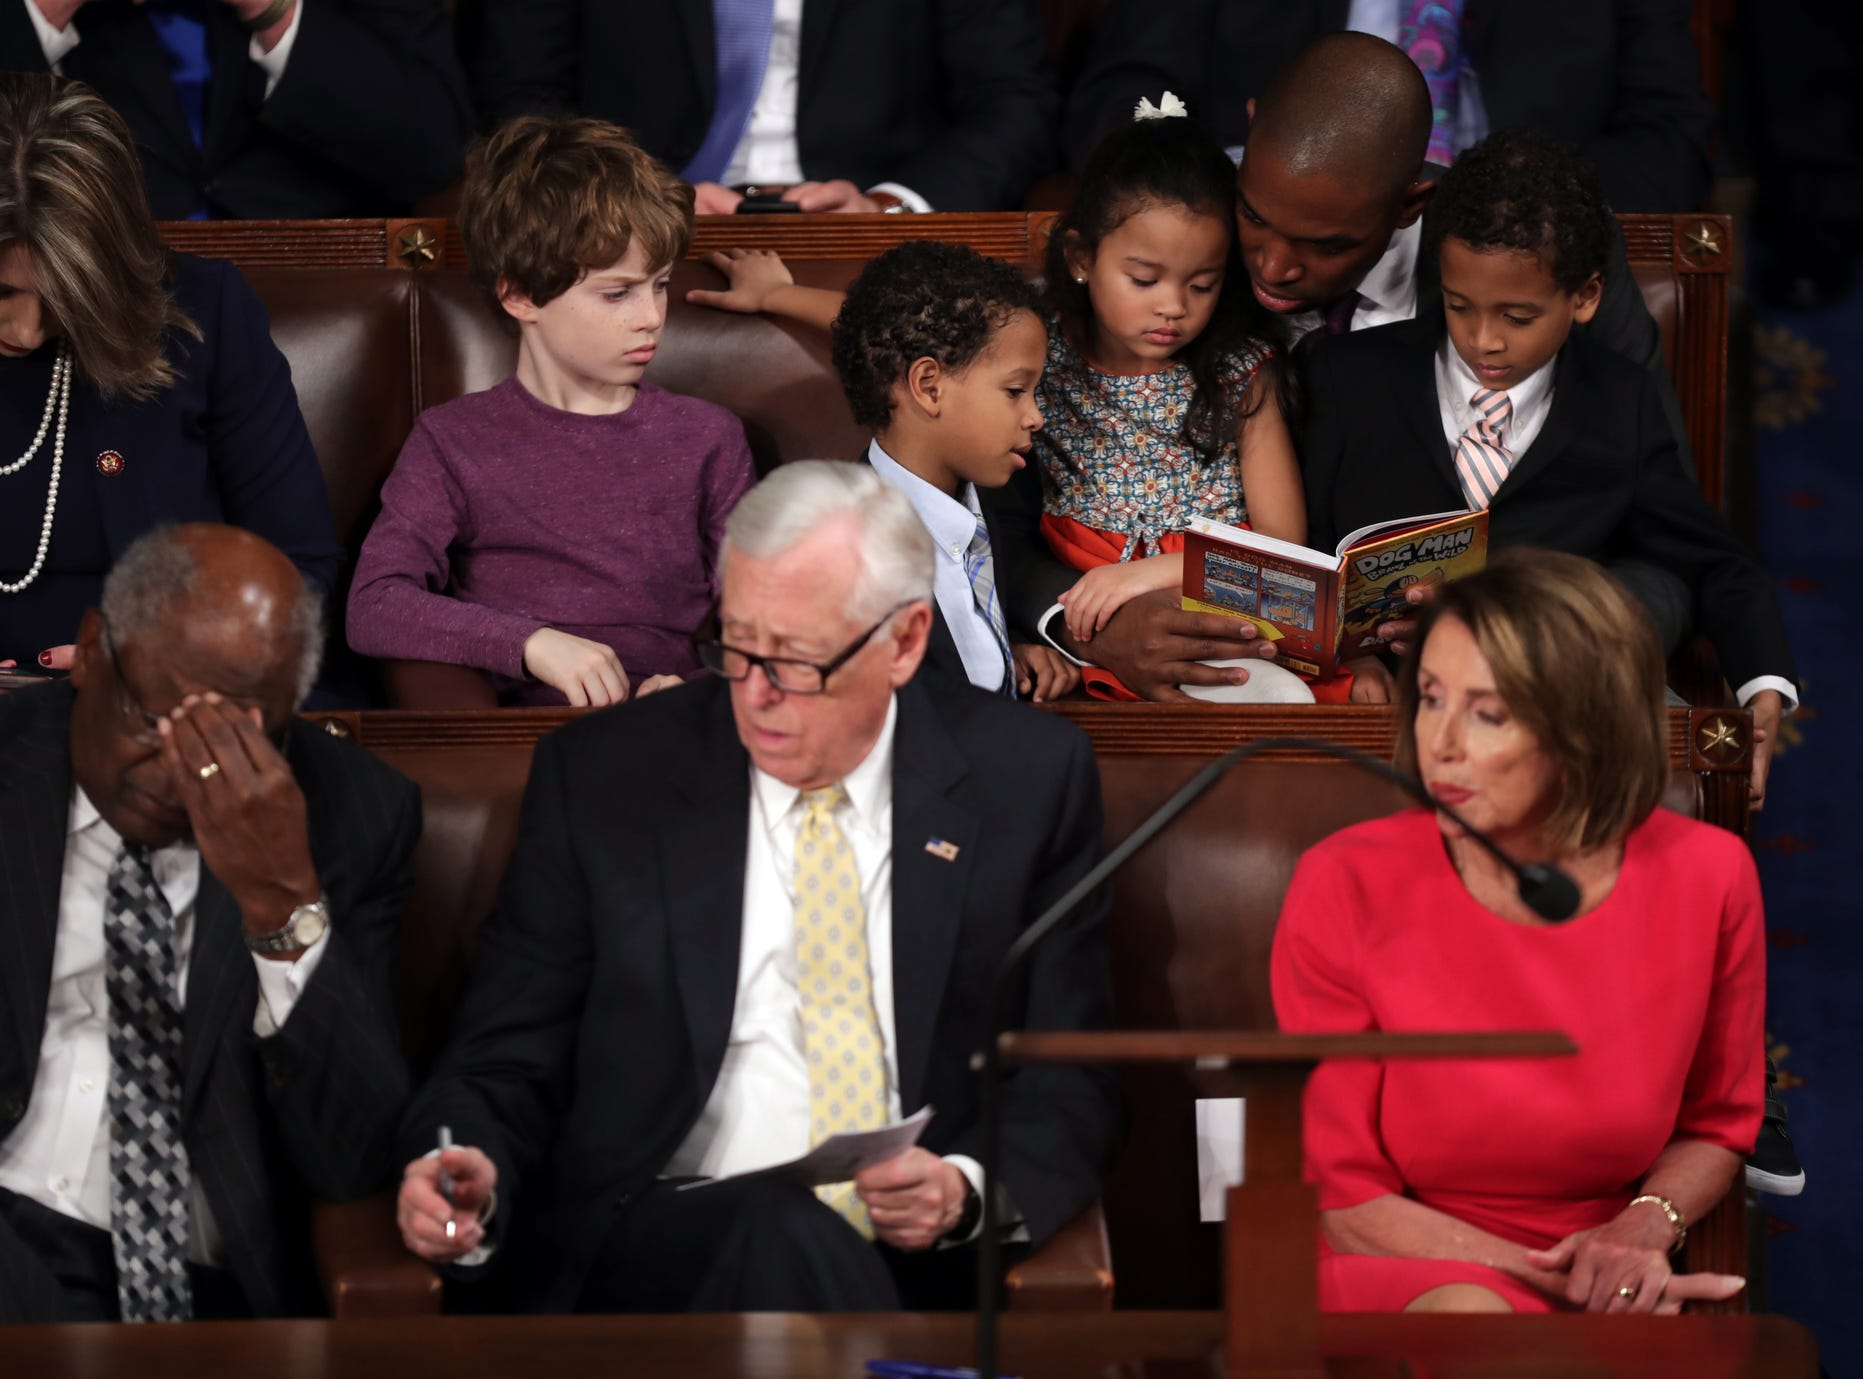 Rep-elect Antonio Delgado (D-NY) reads to children as (Bottom Row, L-R) House Minority Whip Steny Hoyer (D-MD), and Speaker-designate Rep. Nancy Pelosi (D-CA) look on.